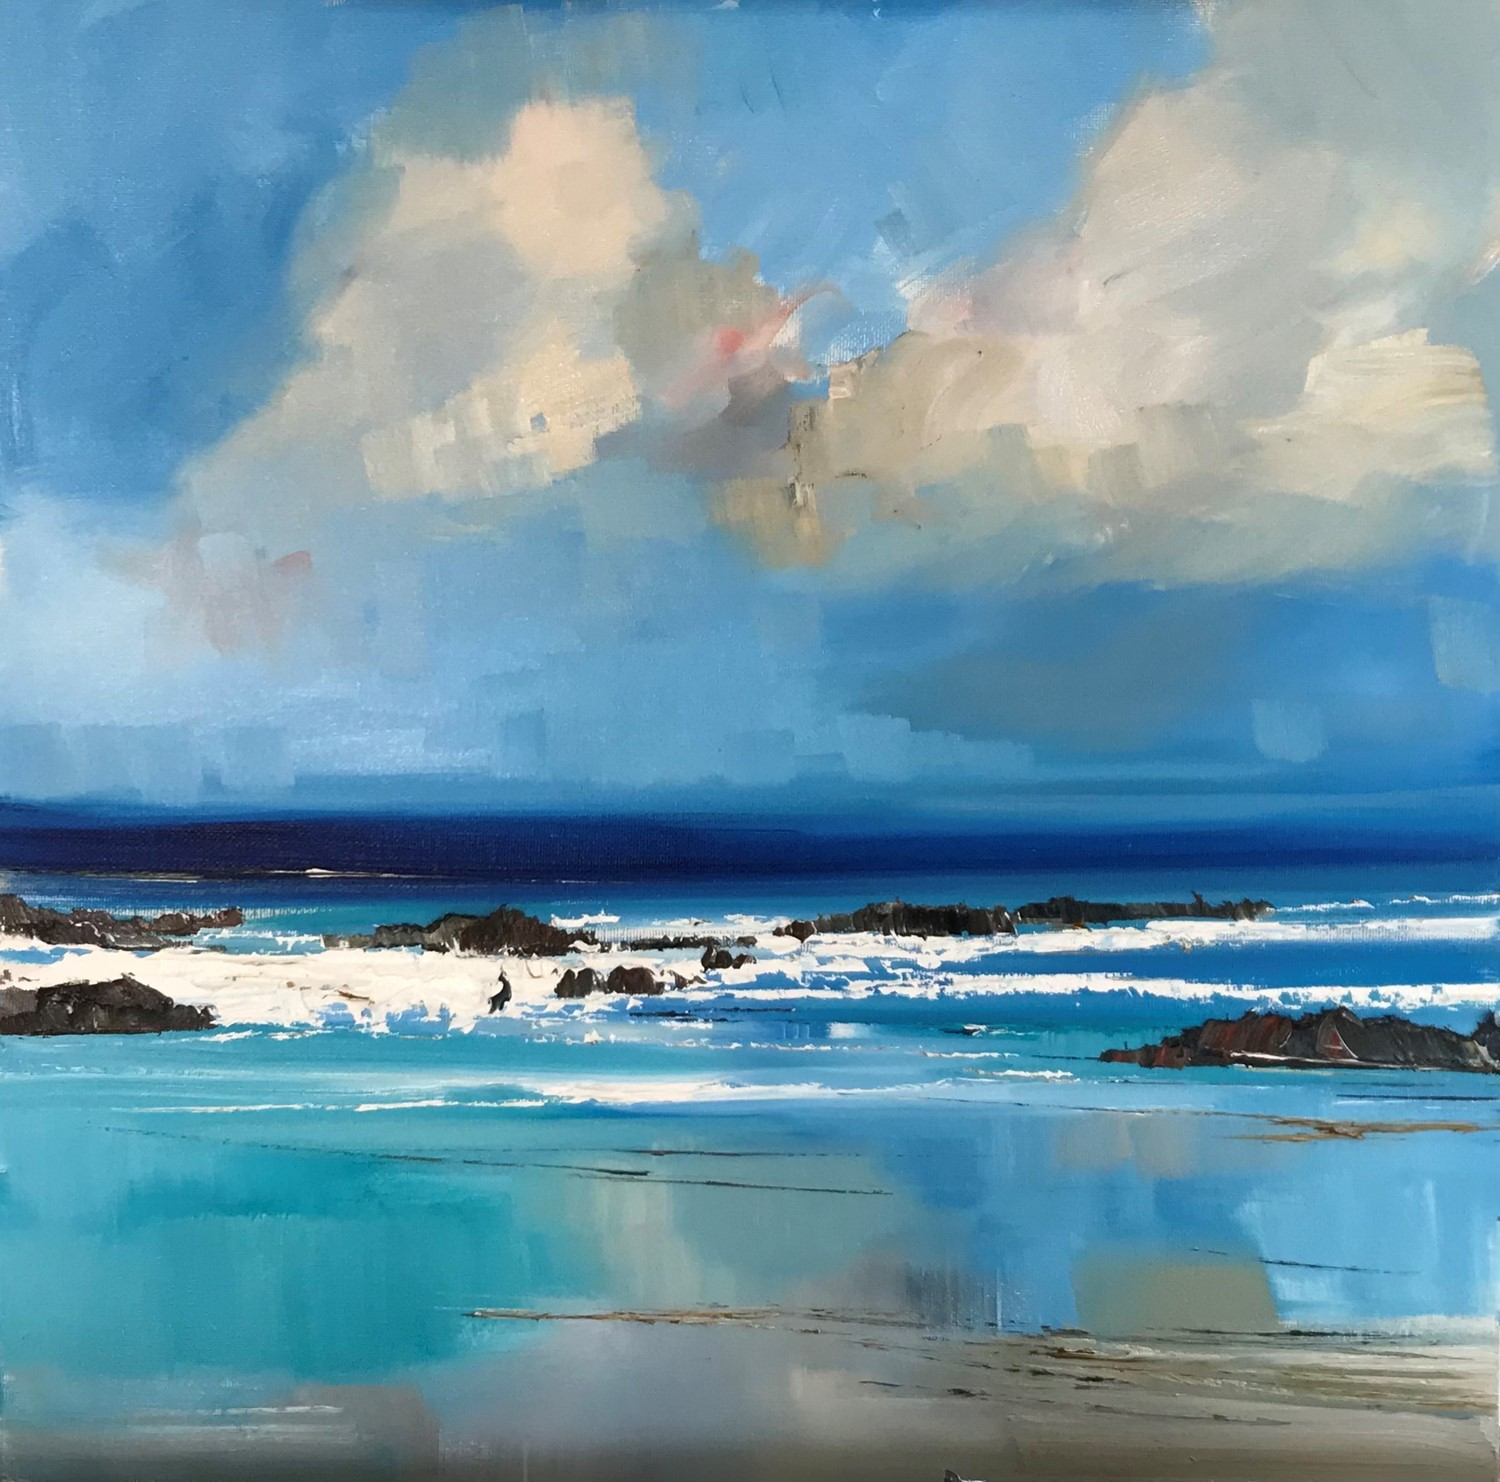 'The tide turns' by artist Rosanne Barr